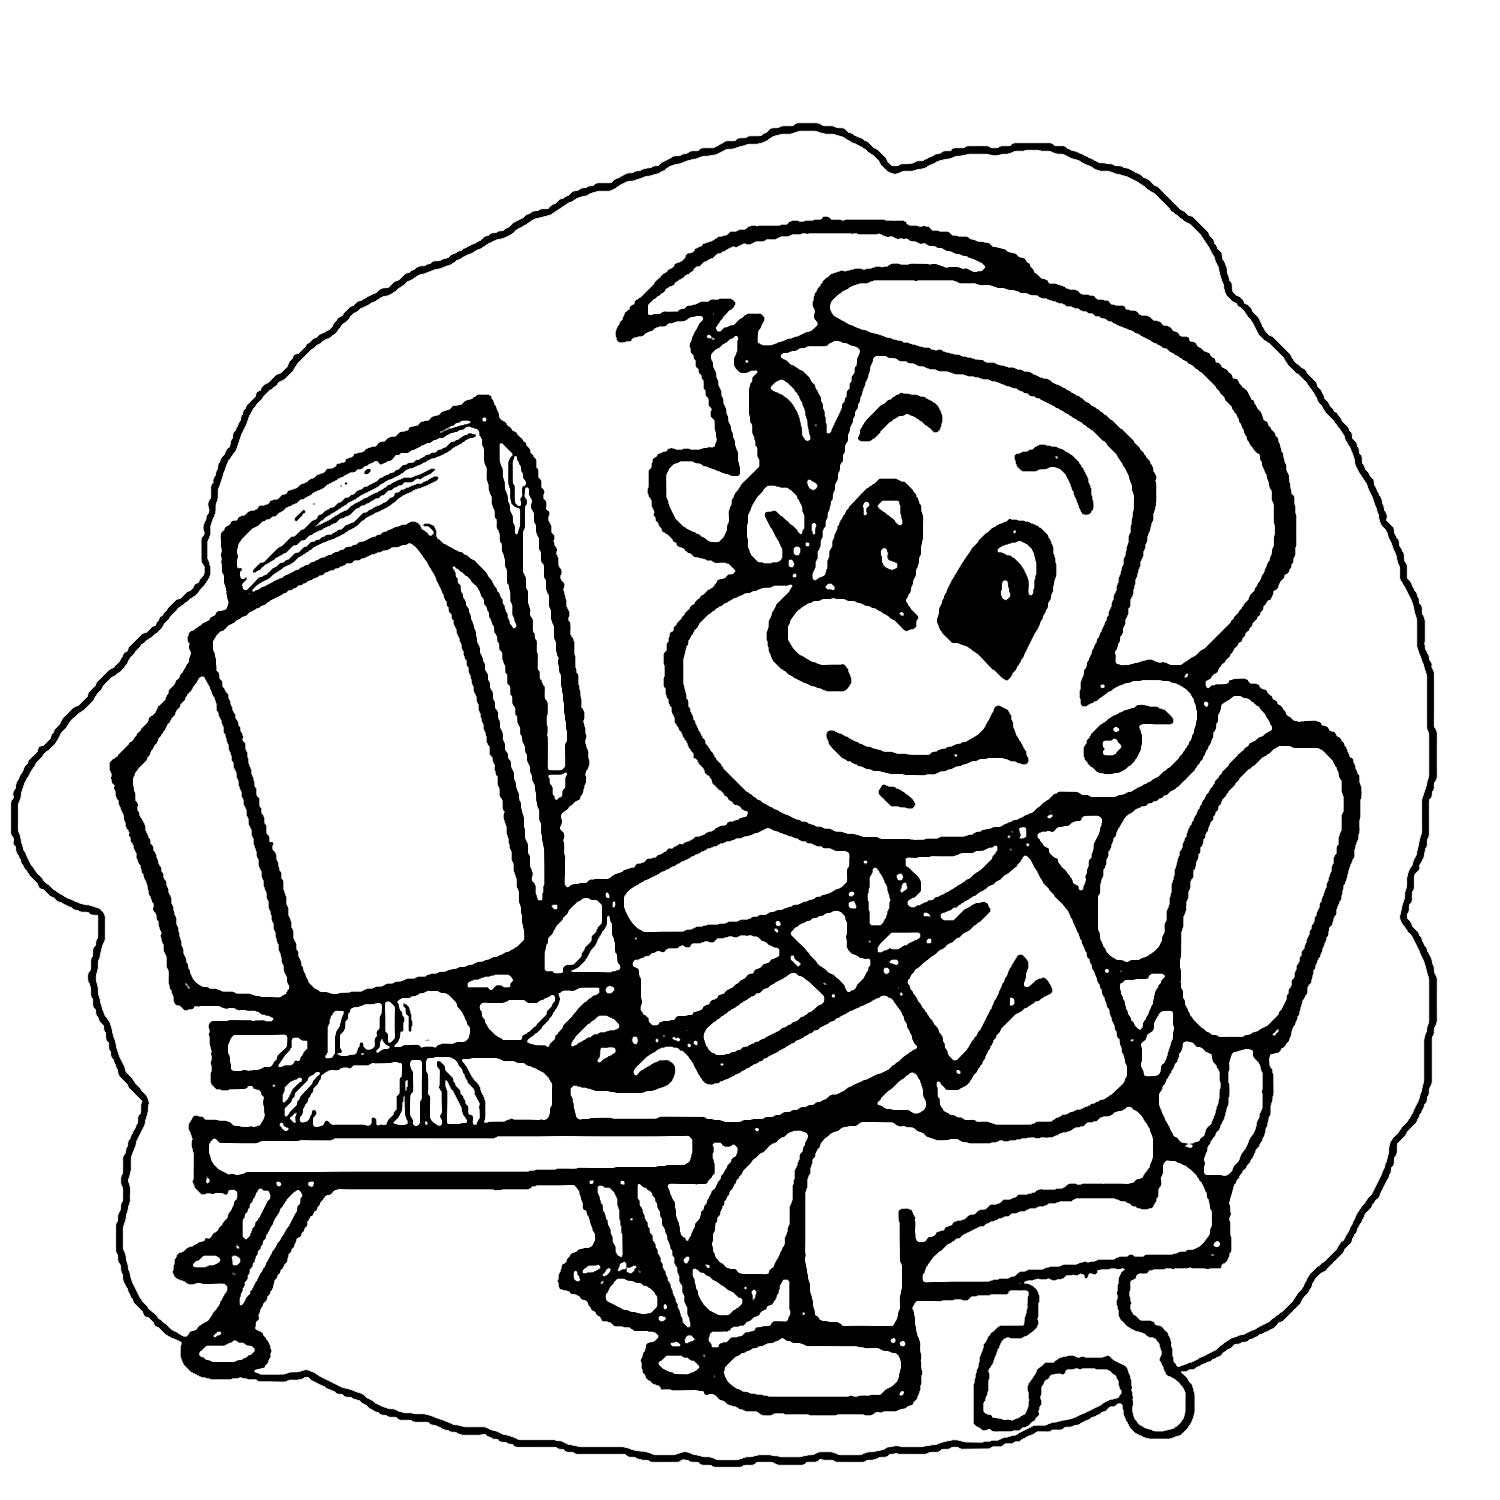 coloring pages 3rd grade 3rd grade coloring page wecoloring grade 3rd coloring pages